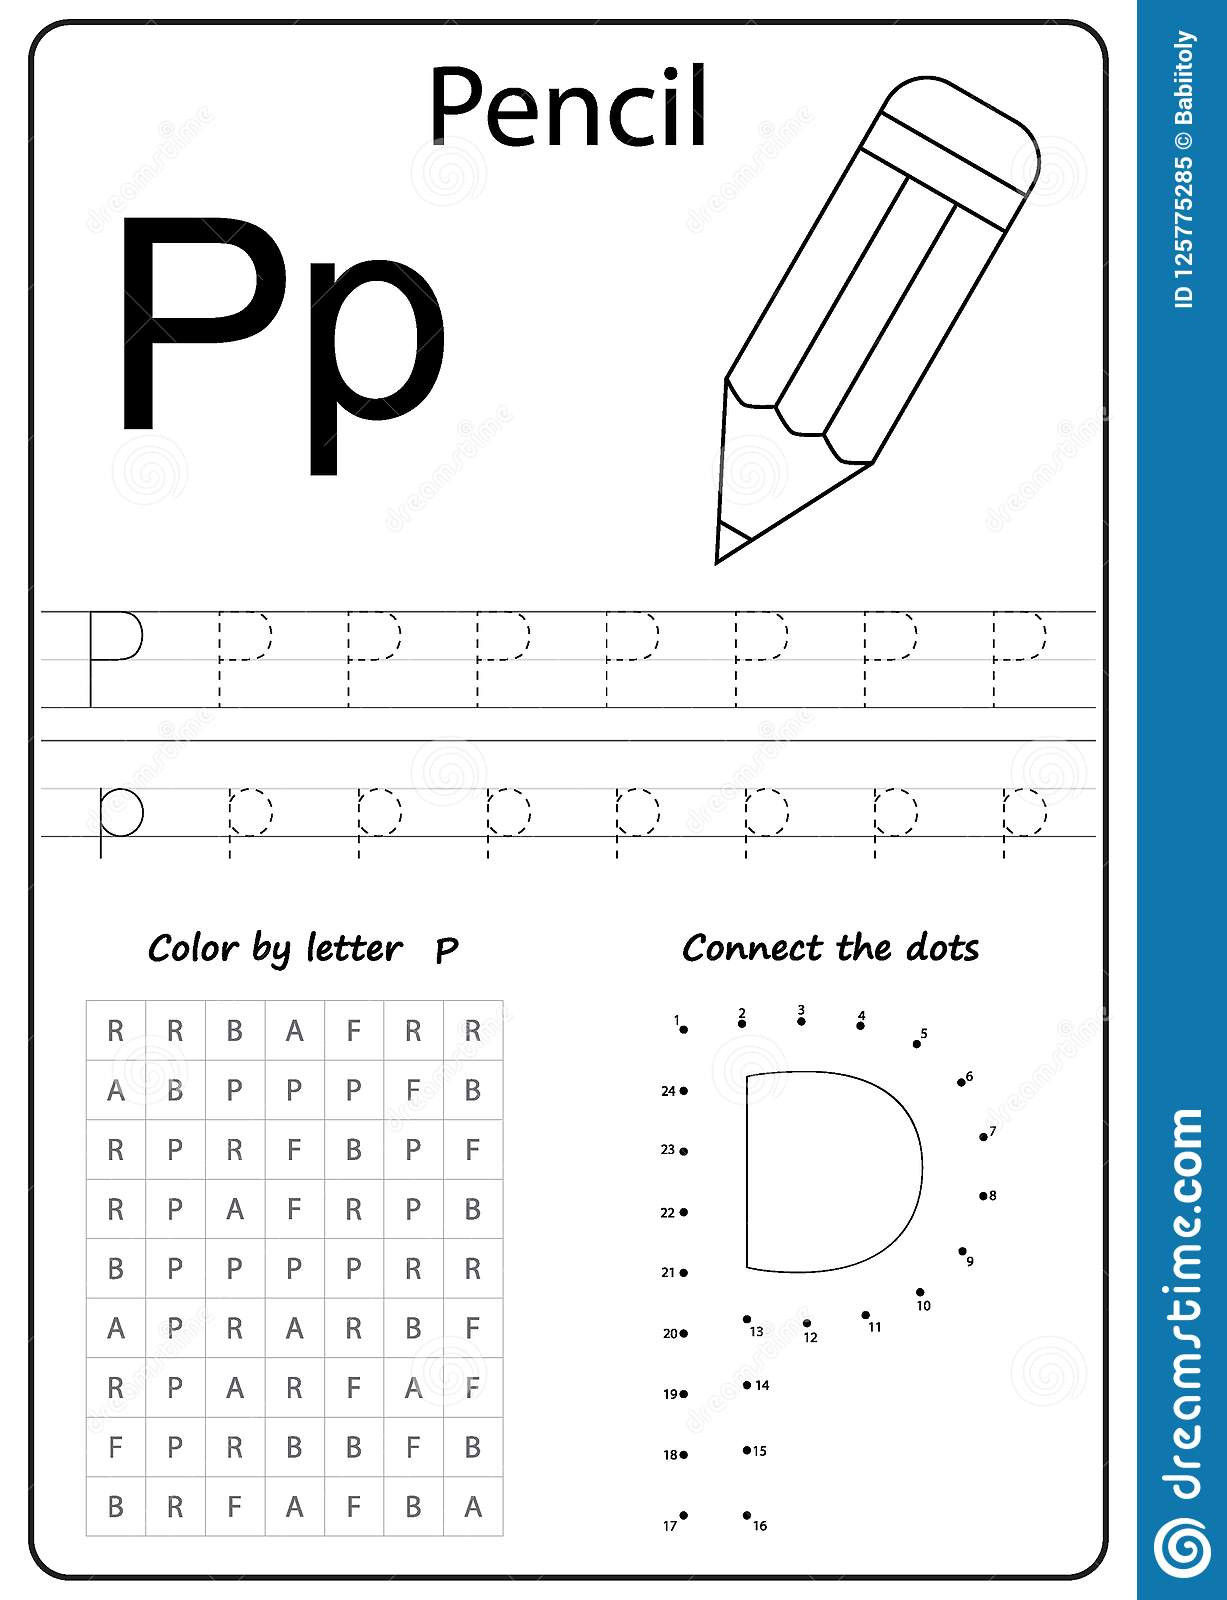 Letter P Preschool Worksheets Letter P Worksheets to Free Download Letter P Worksheets